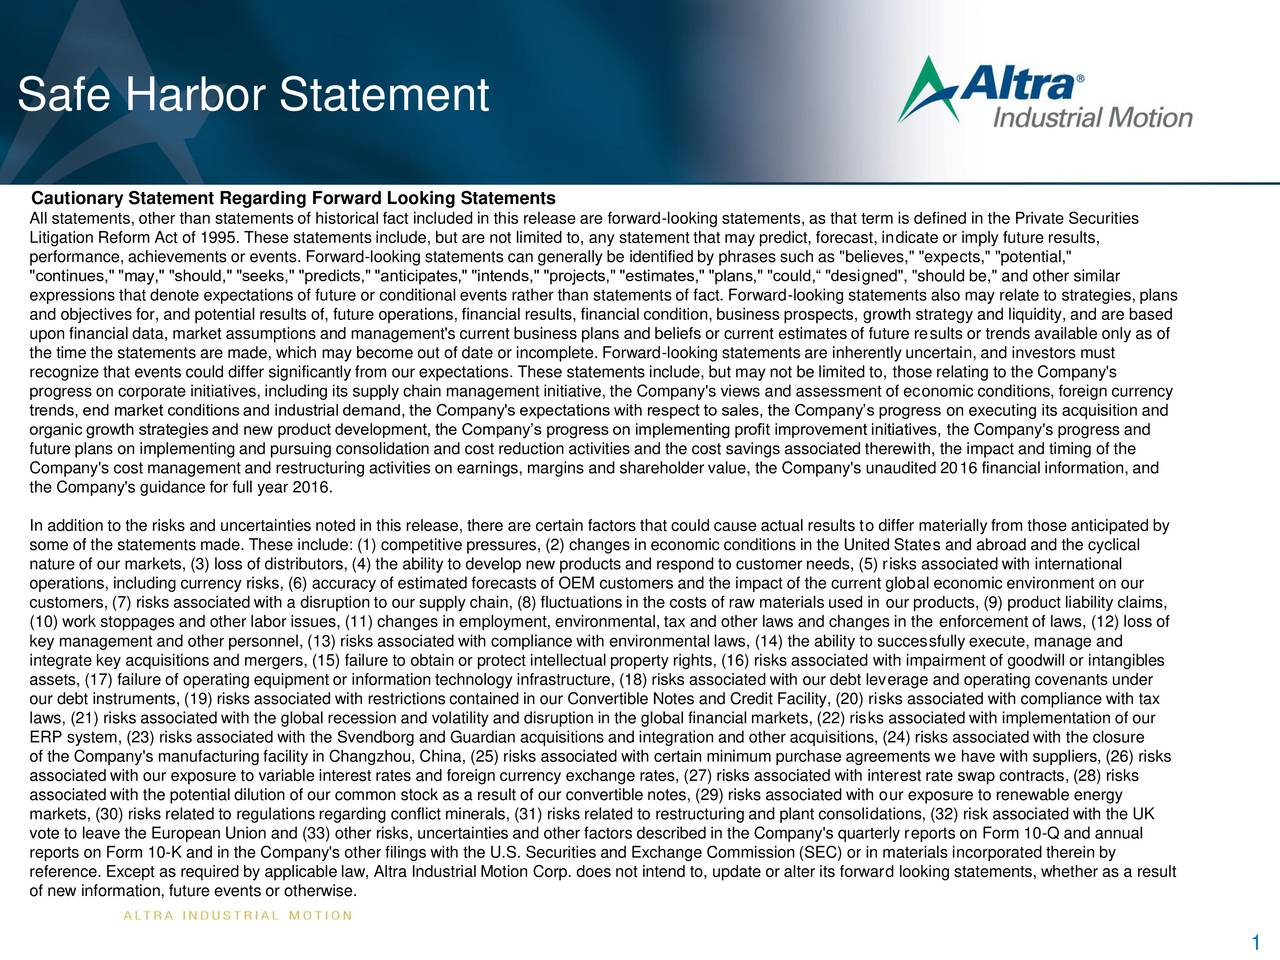 """Cautionary Statement Regarding Forward Looking Statements All statements, other than statements of historical fact included in this release are forward-looking statements, as that term is defined in the Private Securities Litigation Reform Act of 1995. These statements include, but are not limited to, any statement that may predict, forecast, indicate or imply future results, performance, achievements or events. Forward-looking statements can generally be identified by phrases such as """"believes,"""" """"expects,"""" """"potential,"""" """"continues,"""" """"may,"""" """"should,"""" """"seeks,"""" """"predicts,"""" """"anticipates,"""" """"intends,"""" """"projects,"""" """"estimates,"""" """"plans,"""" """"could, """"designed"""", """"should be,"""" and other similar expressions that denote expectations of future or conditional events rather than statements of fact. Forward-looking statements also may relate to strategies, plans and objectives for, and potential results of, future operations, financial results, financial condition, business prospects, growth strategy and liquidity, and are based upon financial data, market assumptions and management's current business plans and beliefs or current estimates of future results or trends available only as of the time the statements are made, which may become out of date or incomplete. Forward-looking statements are inherently uncertain, and investors must recognize that events could differ significantly from our expectations. These statements include, but may not be limited to, those relating to the Company's progress on corporate initiatives, including its supply chain management initiative, the Company's views and assessment of economic conditions, foreign currency trends, end market conditions and industrial demand, the Company's expectations with respect to sales, the Companys progress on executing its acquisition and organic growth strategies and new product development, the Companys progress on implementing profit improvement initiatives, the Company's progress and future plans on implementing and purs"""